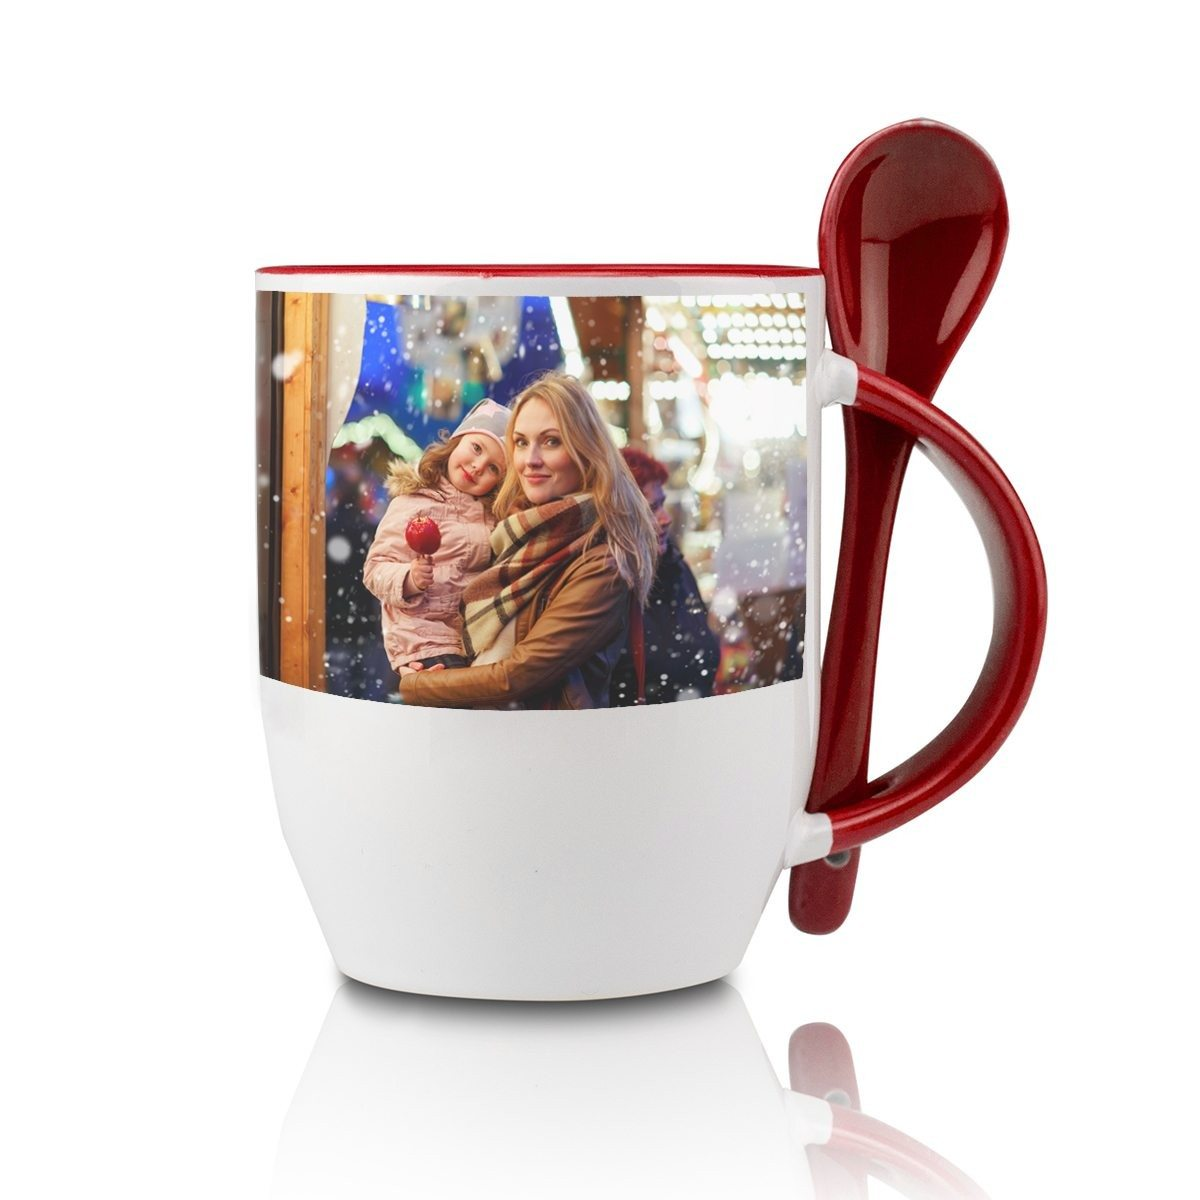 RED SPOON CUP WITH PHOTO PRINT